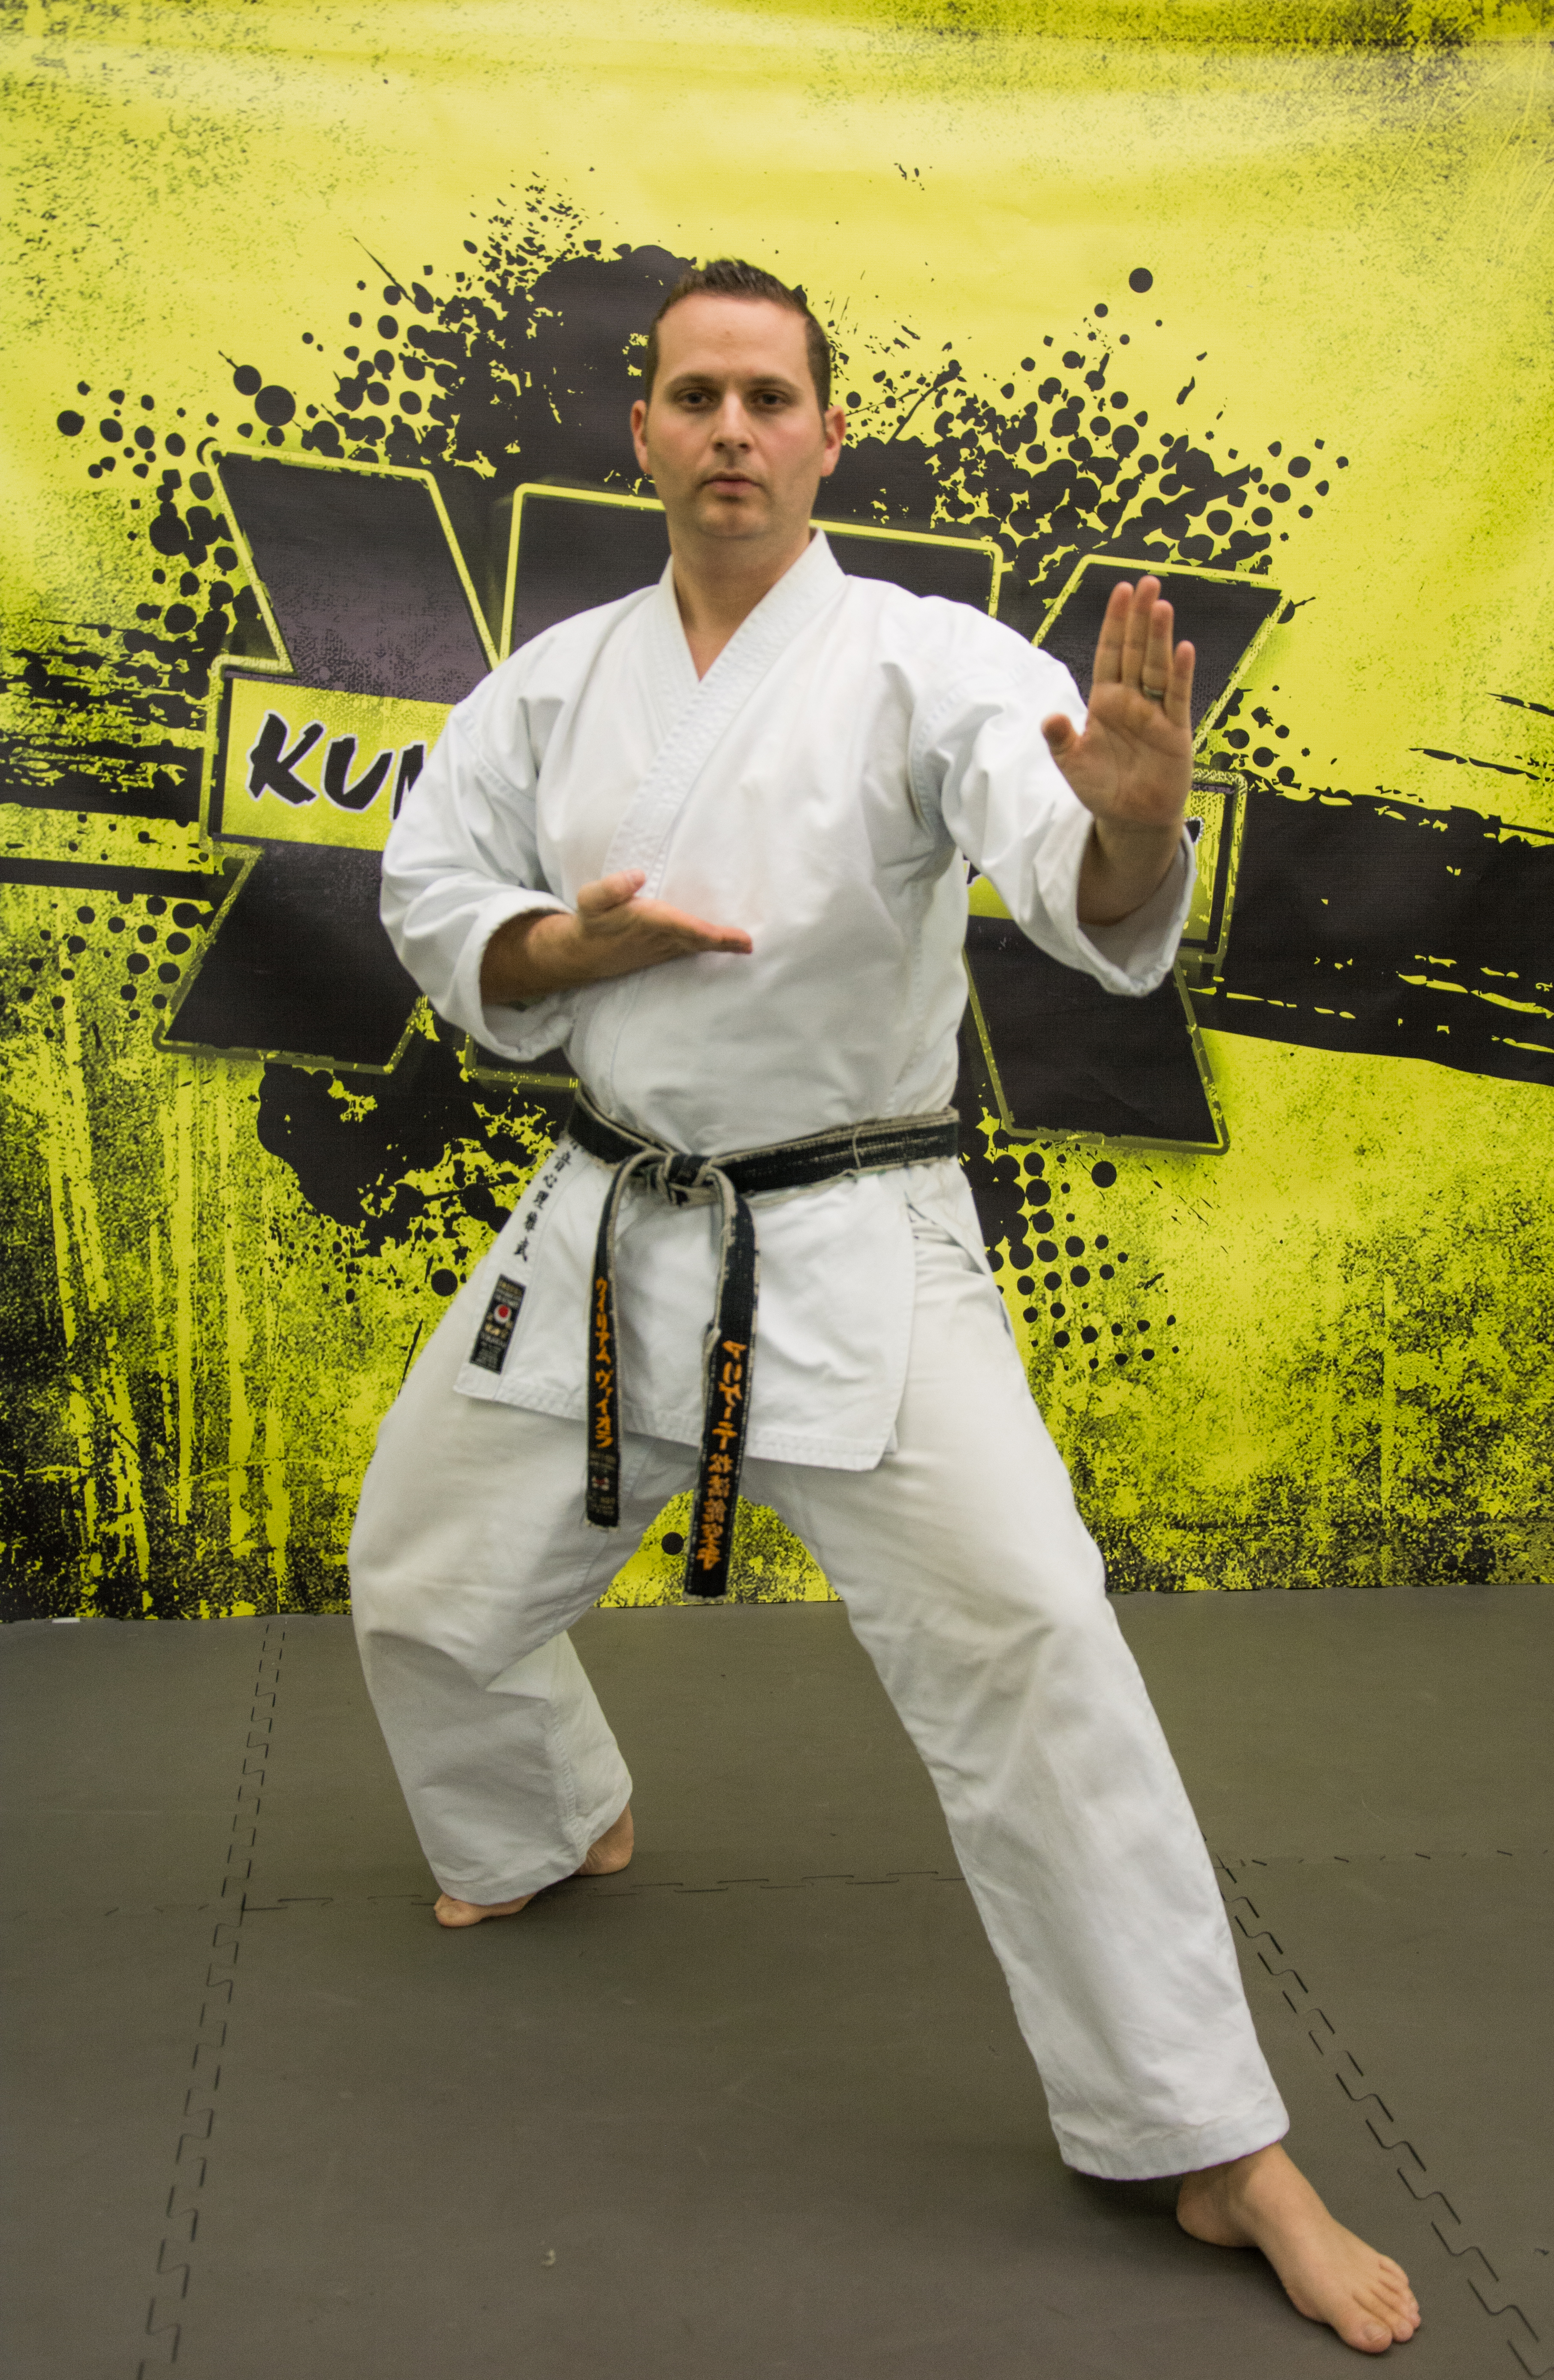 bill viola jr karate